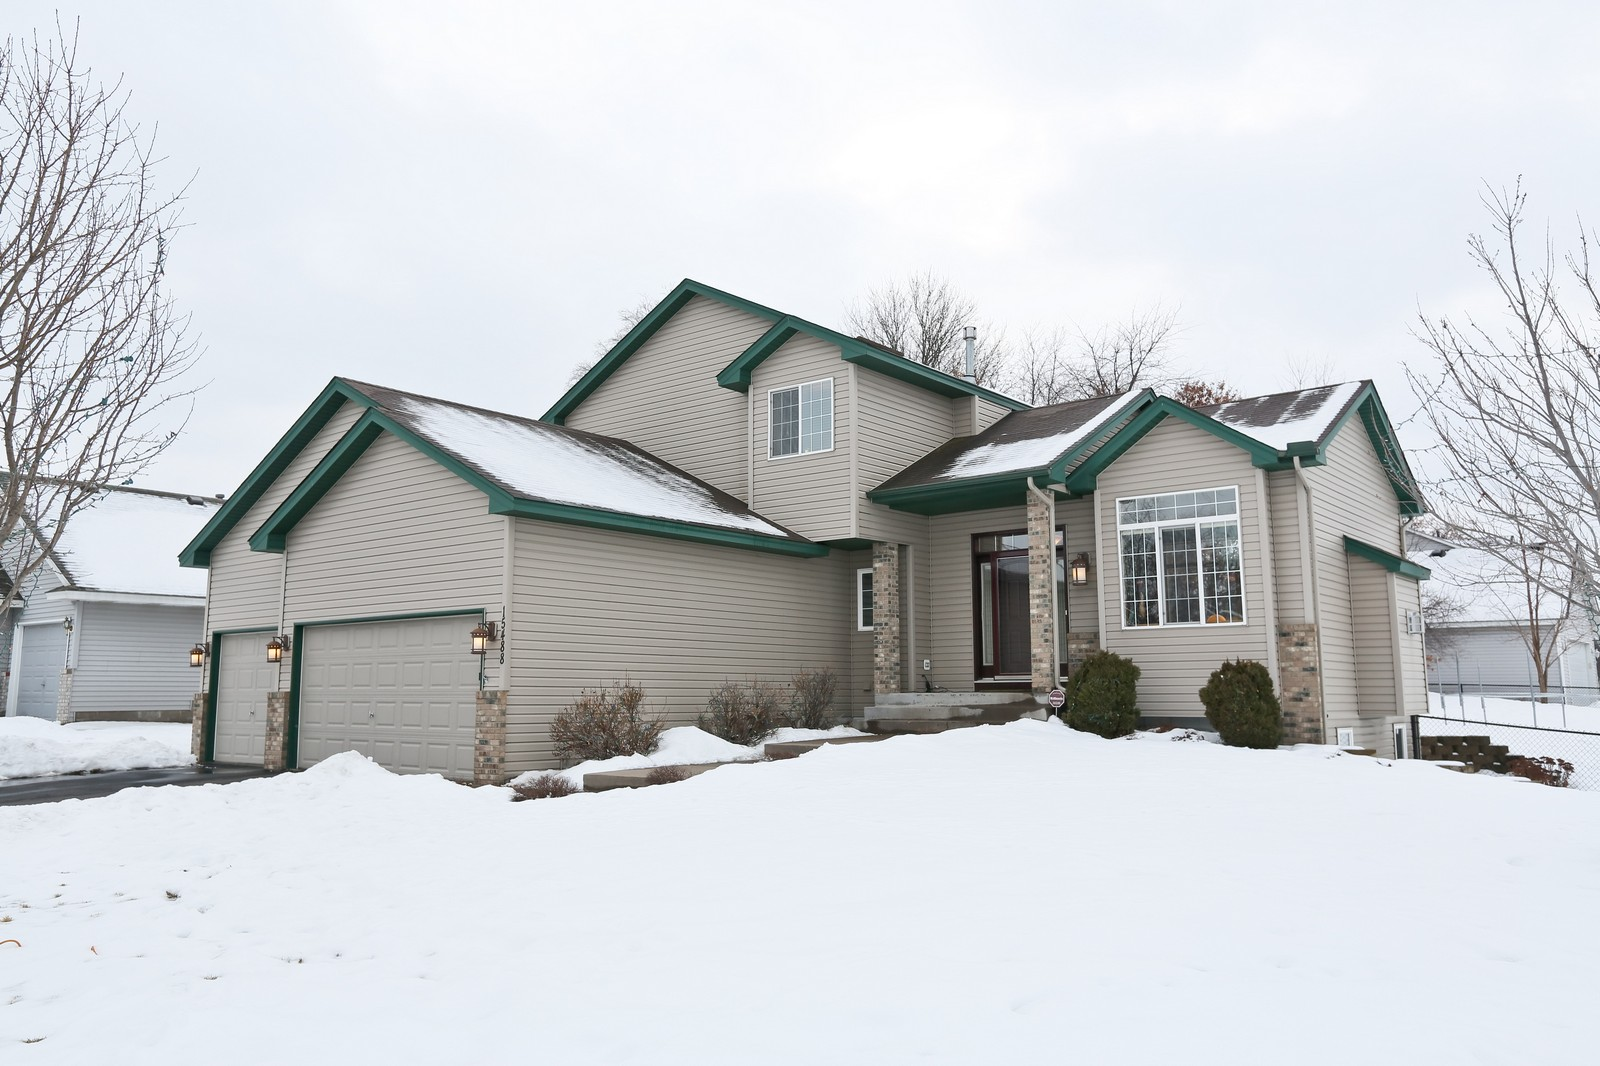 Real Estate Photography - 15488 Linnet Street NW, Andover, MN, 55304 - Front View